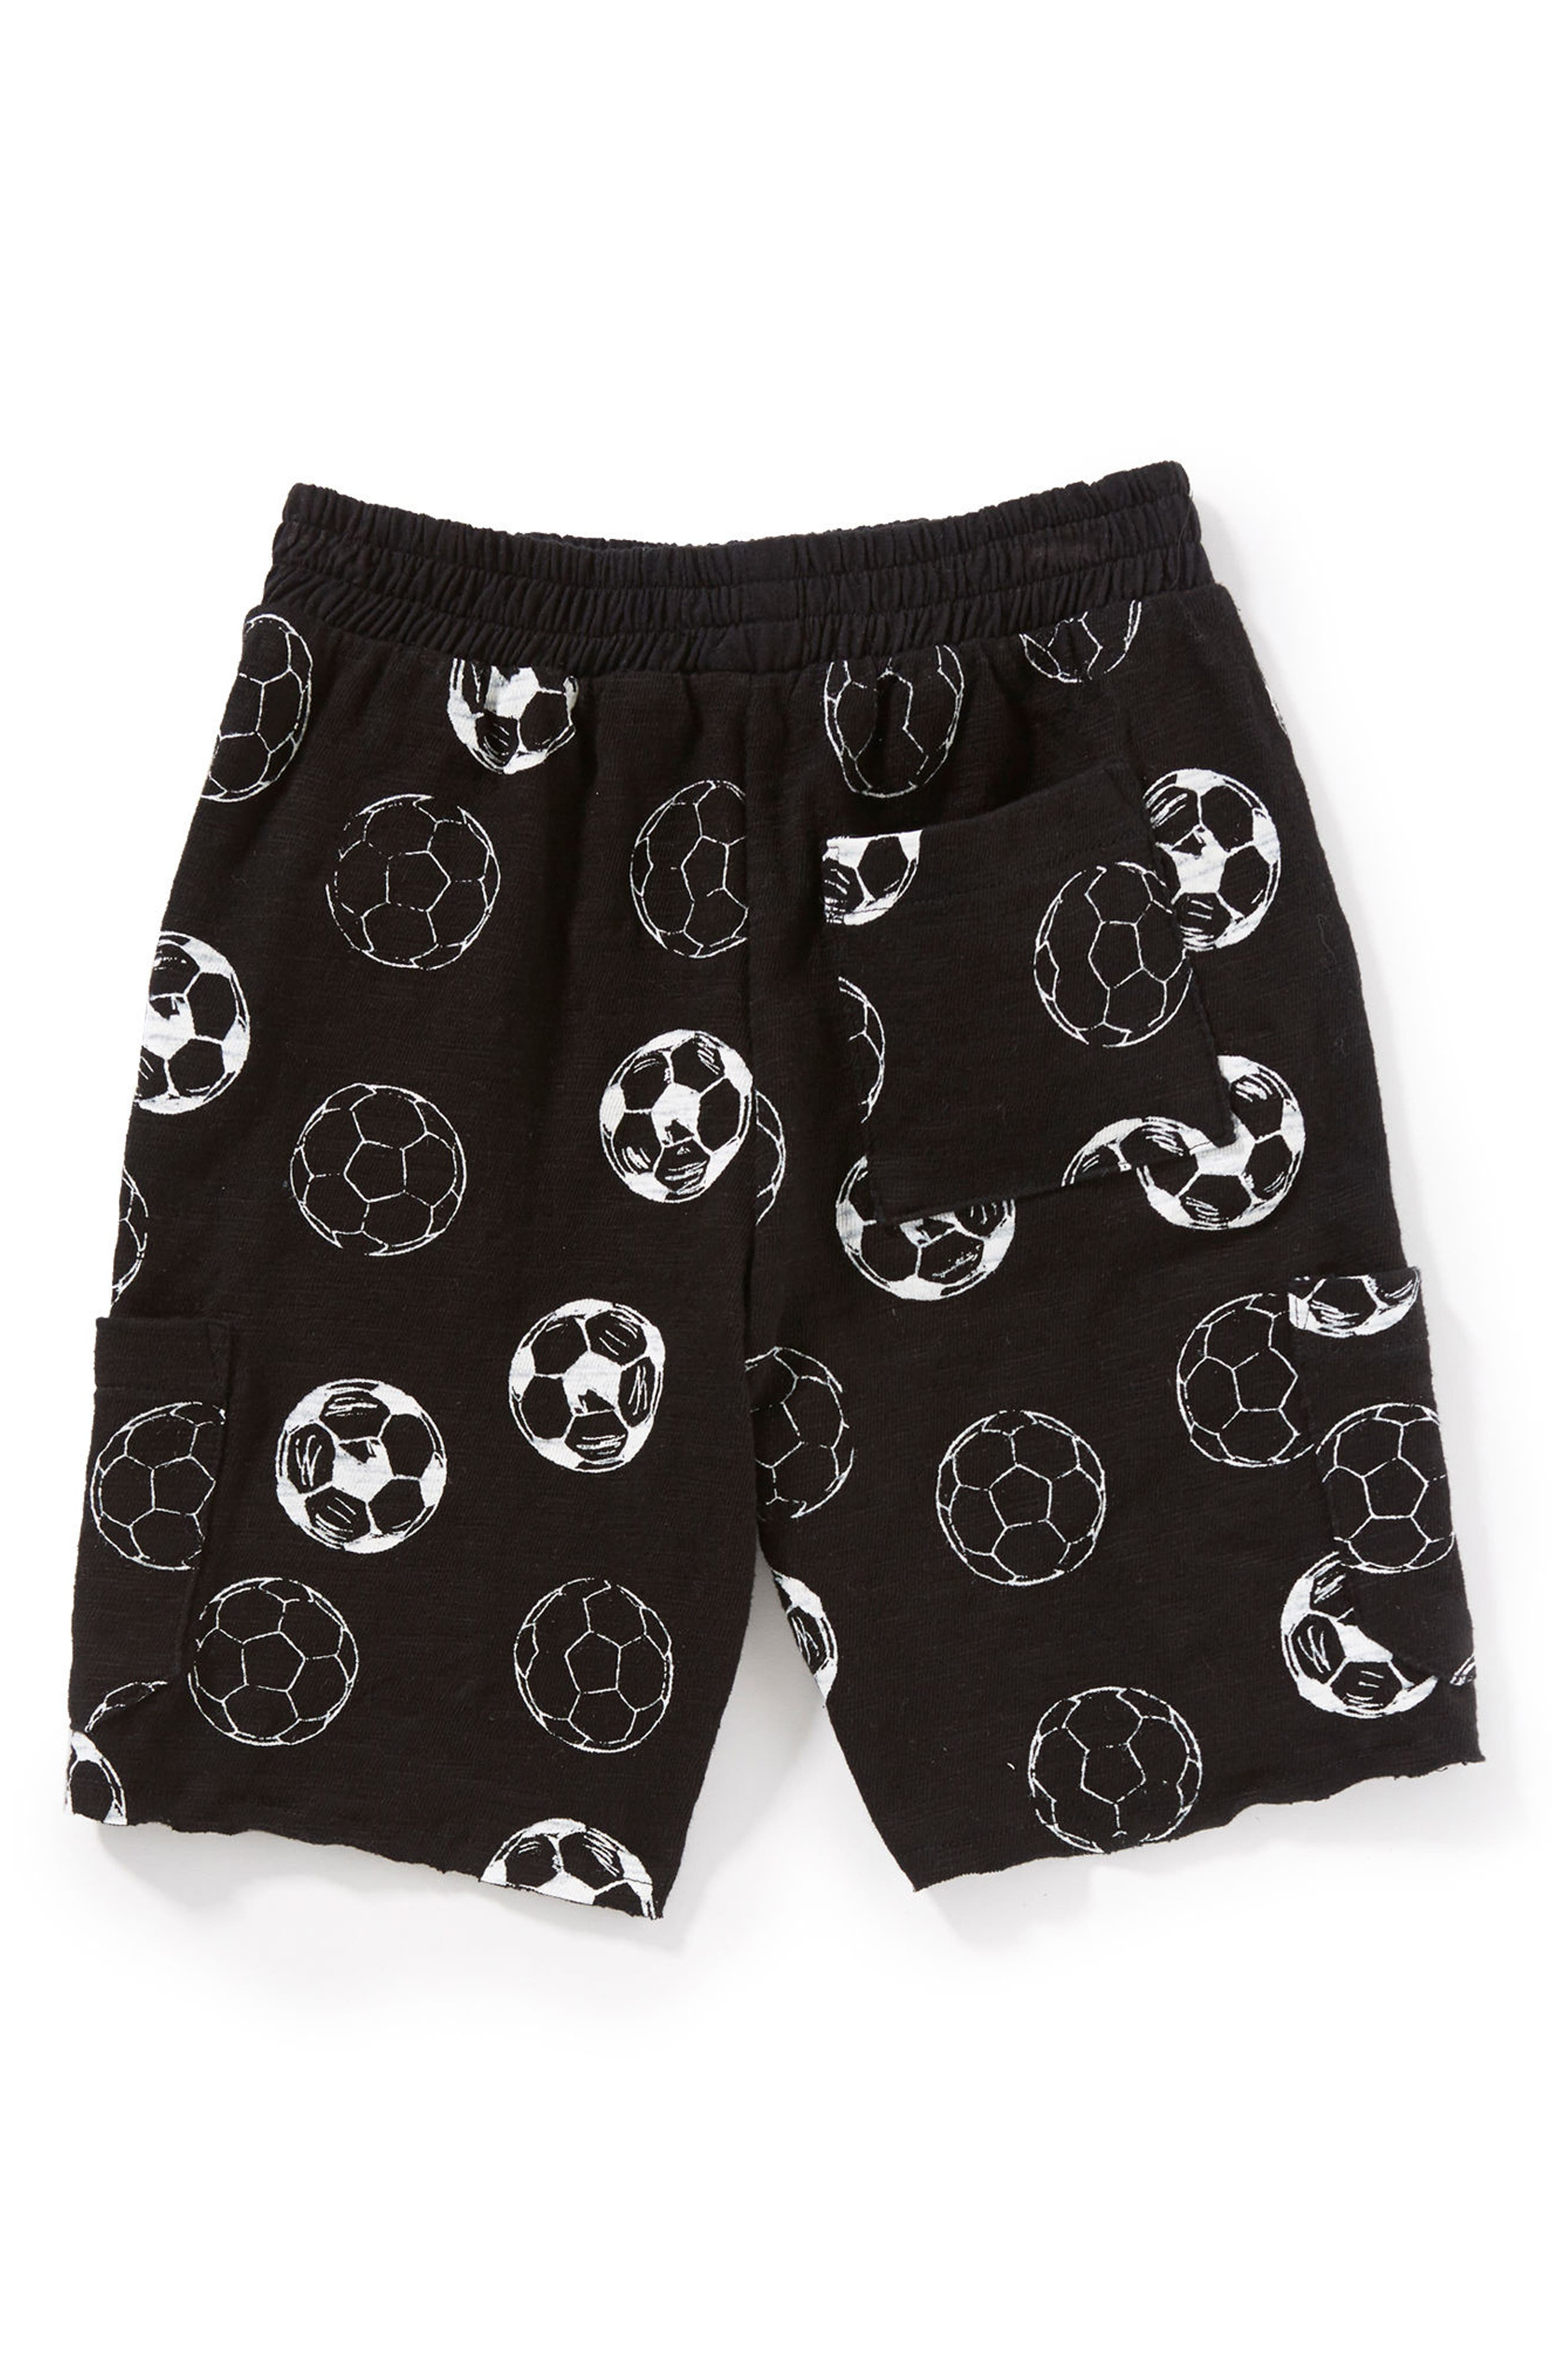 Soccer Ball Shorts,                             Alternate thumbnail 2, color,                             Black